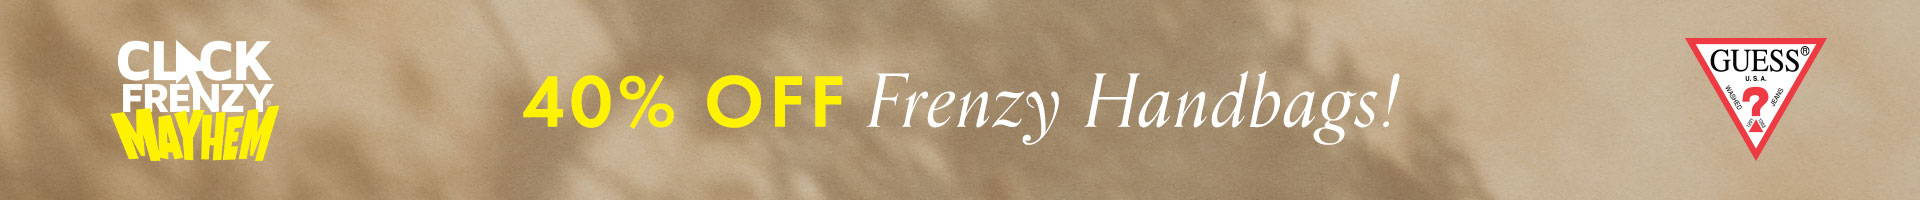 Guess Click Frenzy 40% off Sale Handbags